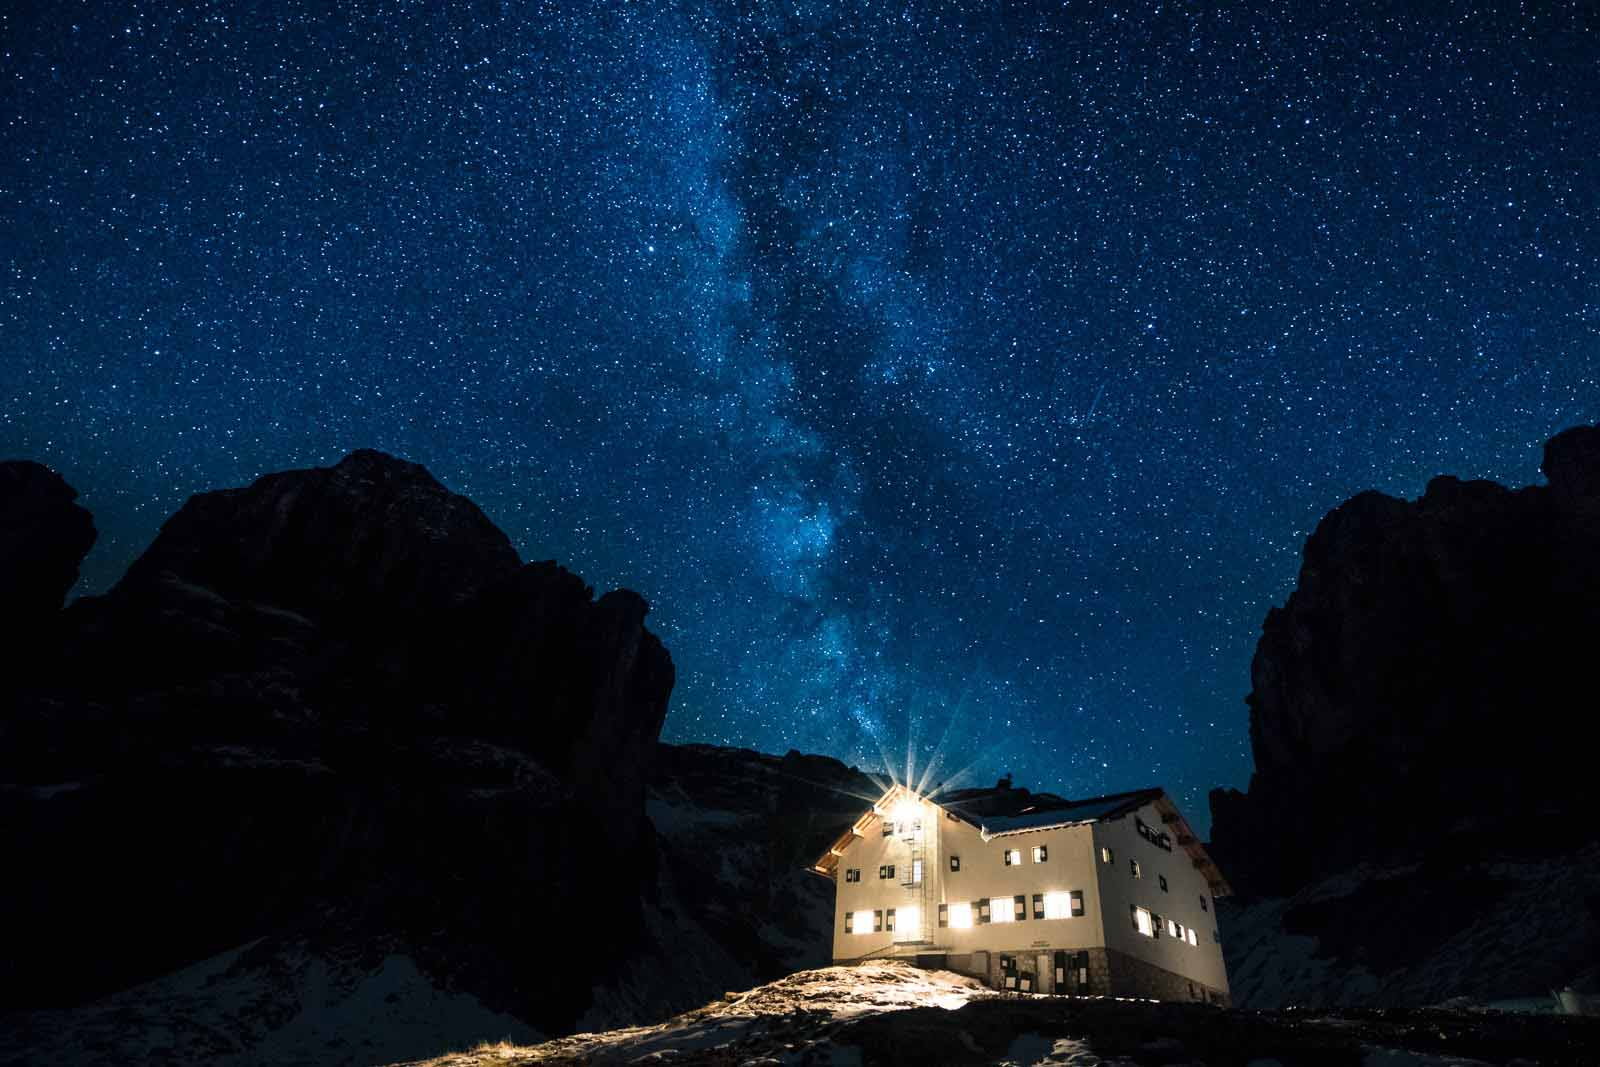 The Milky Way over Pisciadu Hutte, landscape photography taken with long exposure